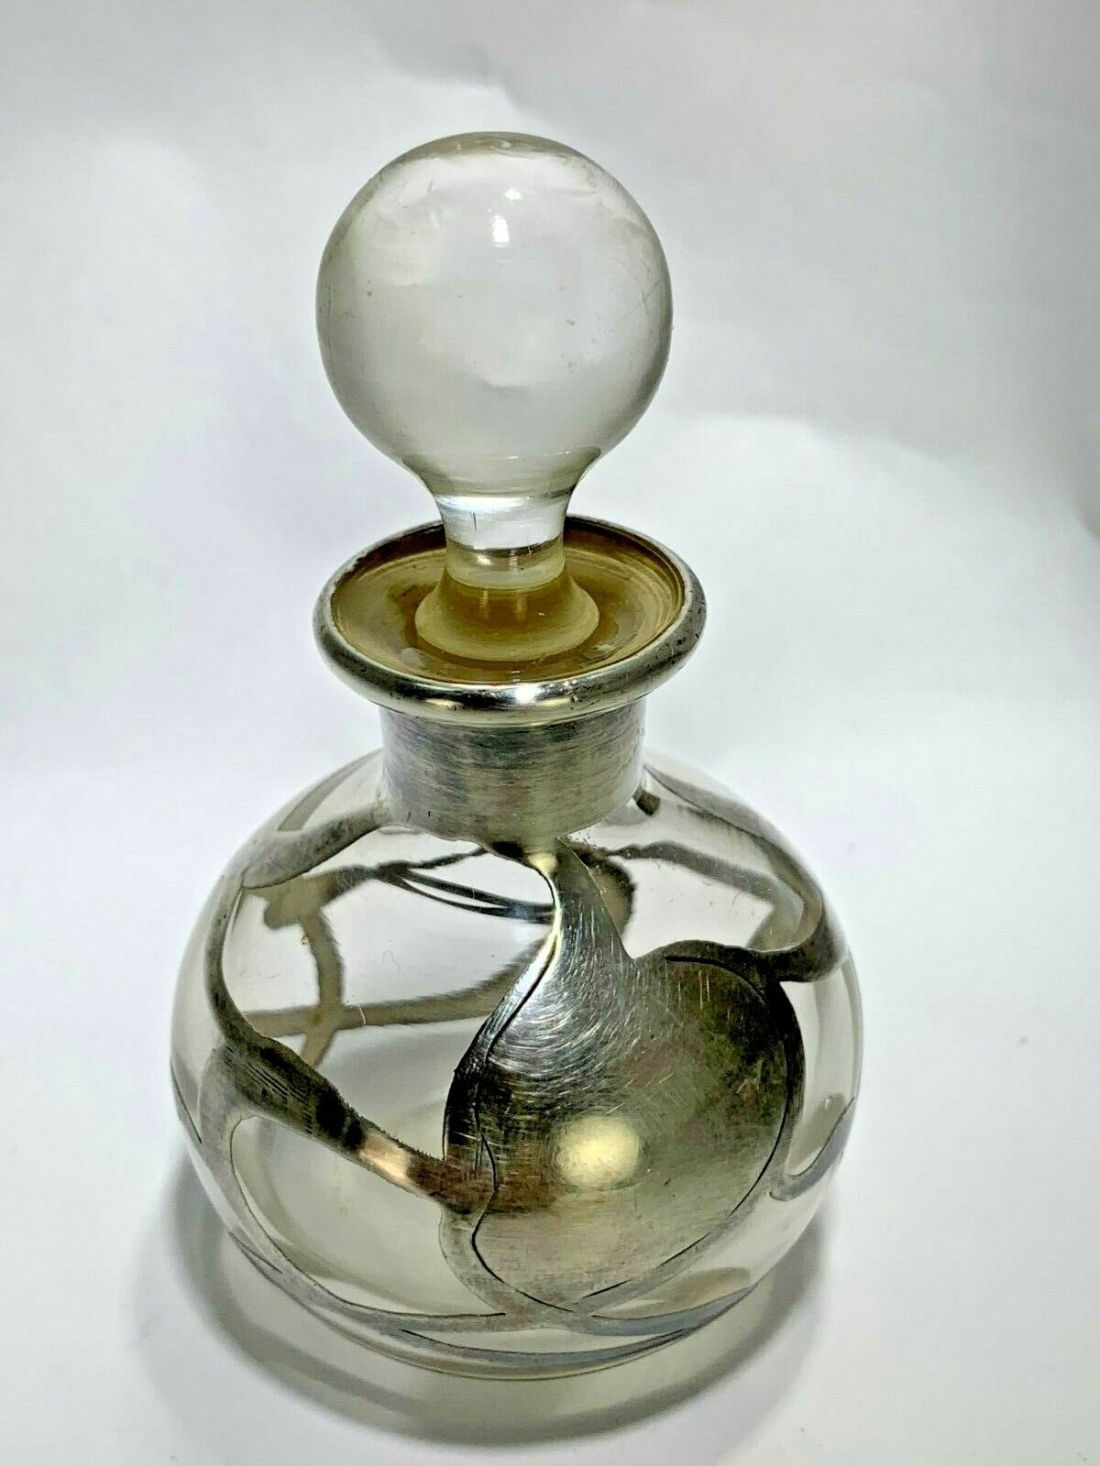 Clear glass perfume bottle with sterling silver overlay in a foliage design. Art Deco. Glass and sterling silver. Maker not known.